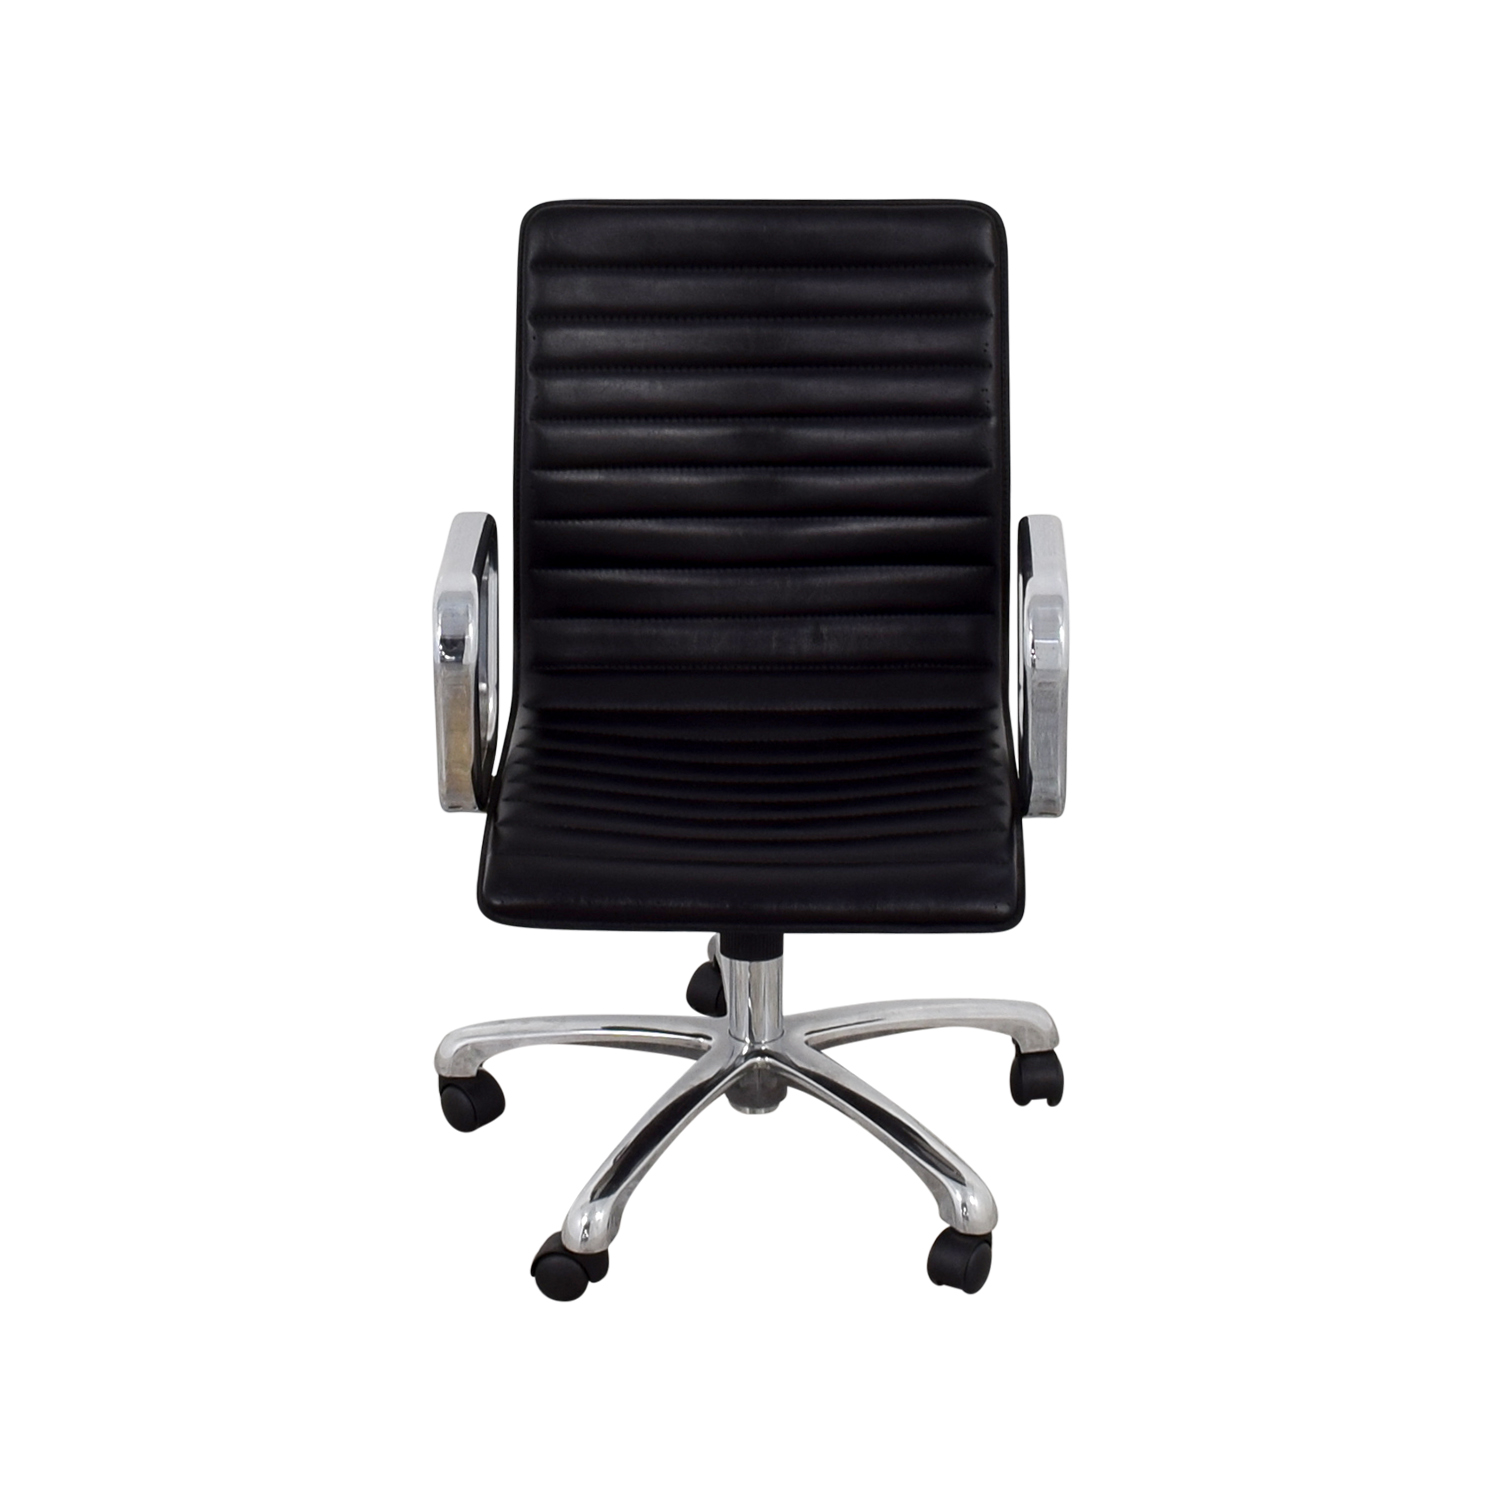 shop Crate & Barrel Ripple Leather Office Chair Crate & Barrel Home Office Chairs